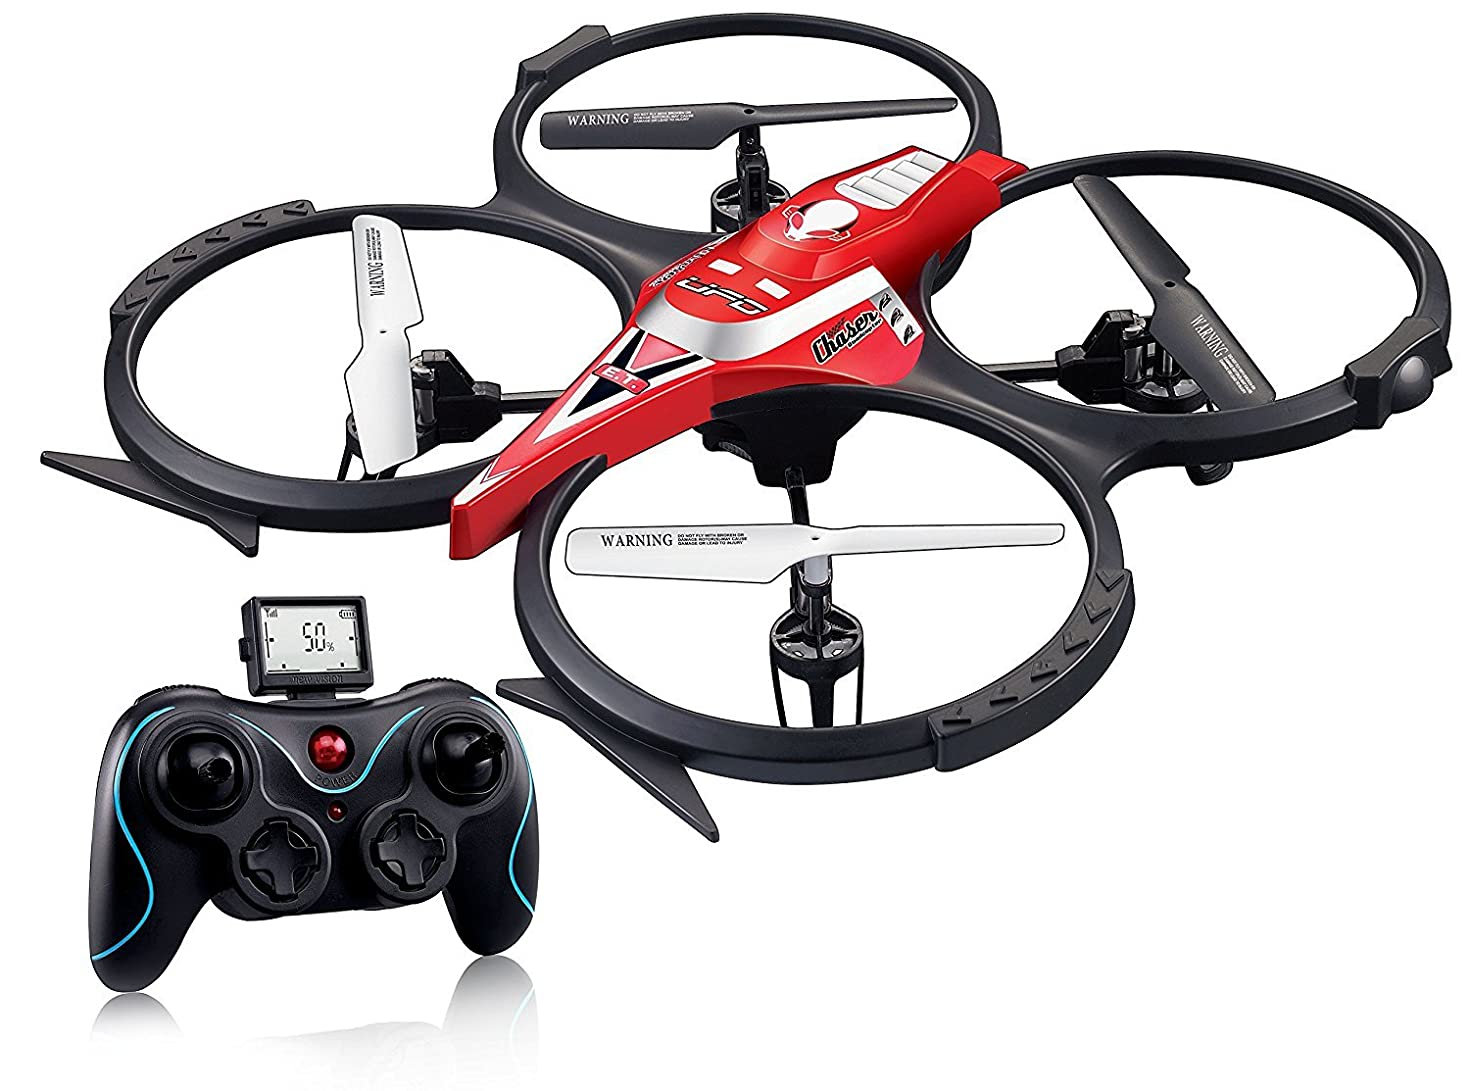 Holy Stone F182C 2.4GHz 4 Channel Remote Control Quadcopter with Camera, LCD Panel Display, 15.4 x 15.4 x 3.5 -Inch